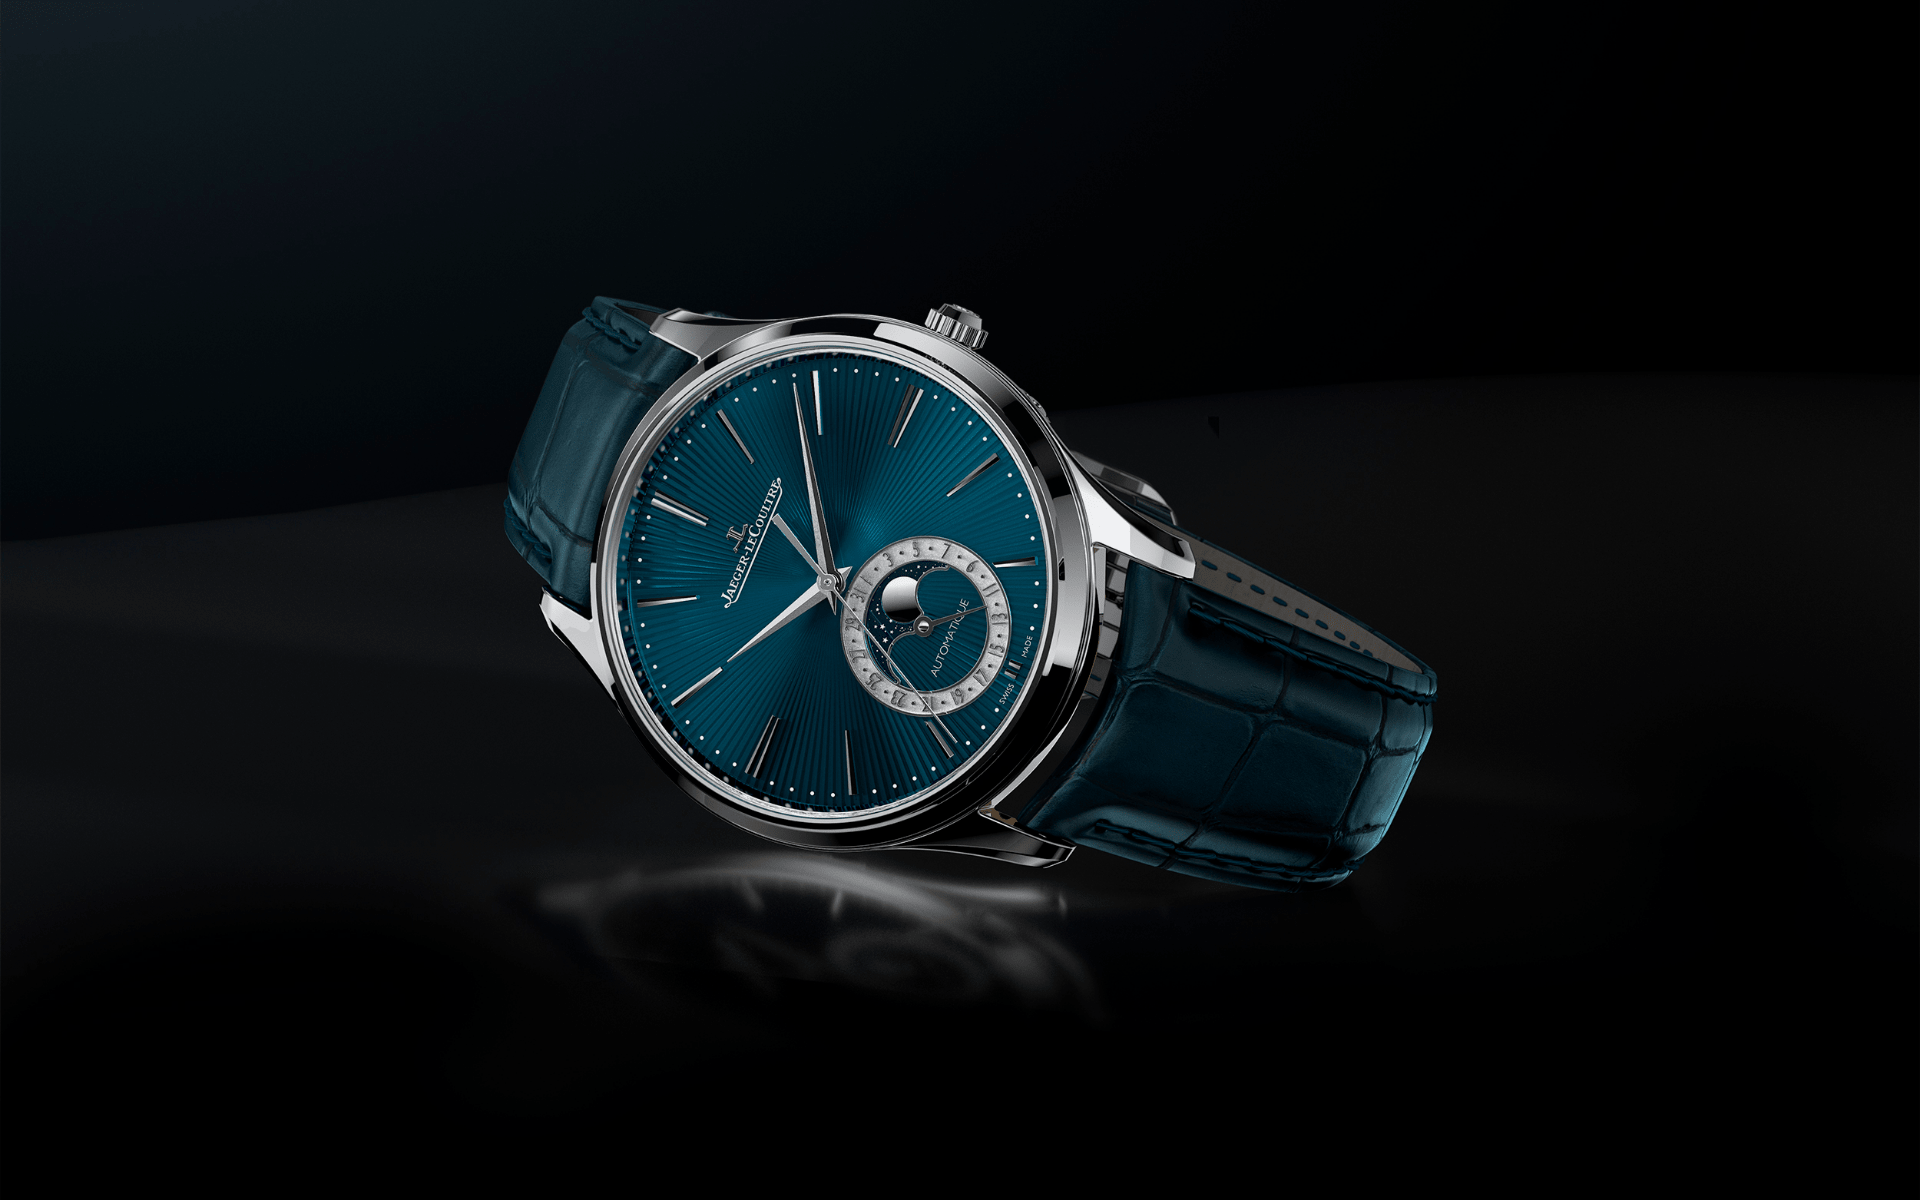 Pre-SIHH 2019: Jaeger-LeCoultre And Girard-Perregaux Crushing On Blue